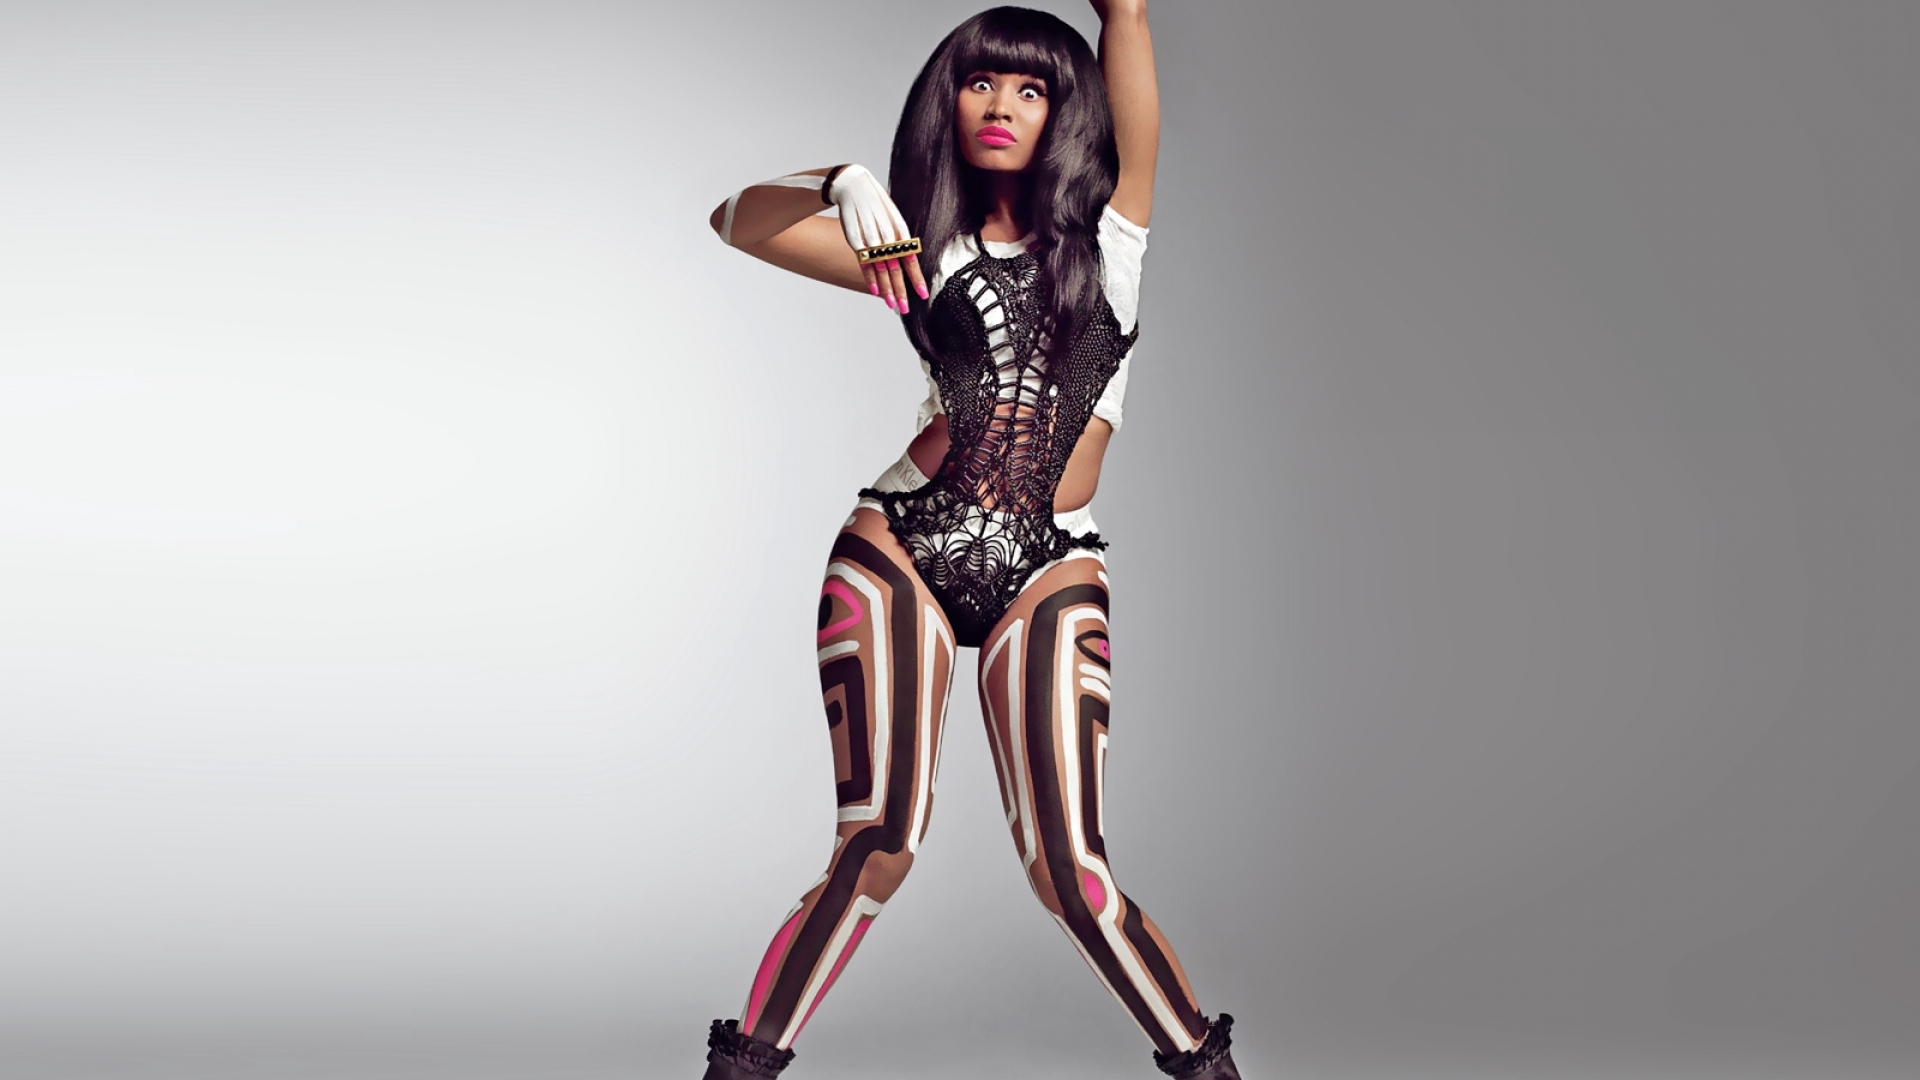 Nicki Minaj Desktop Backgrounds   Wallpaper High Definition High 1920x1080